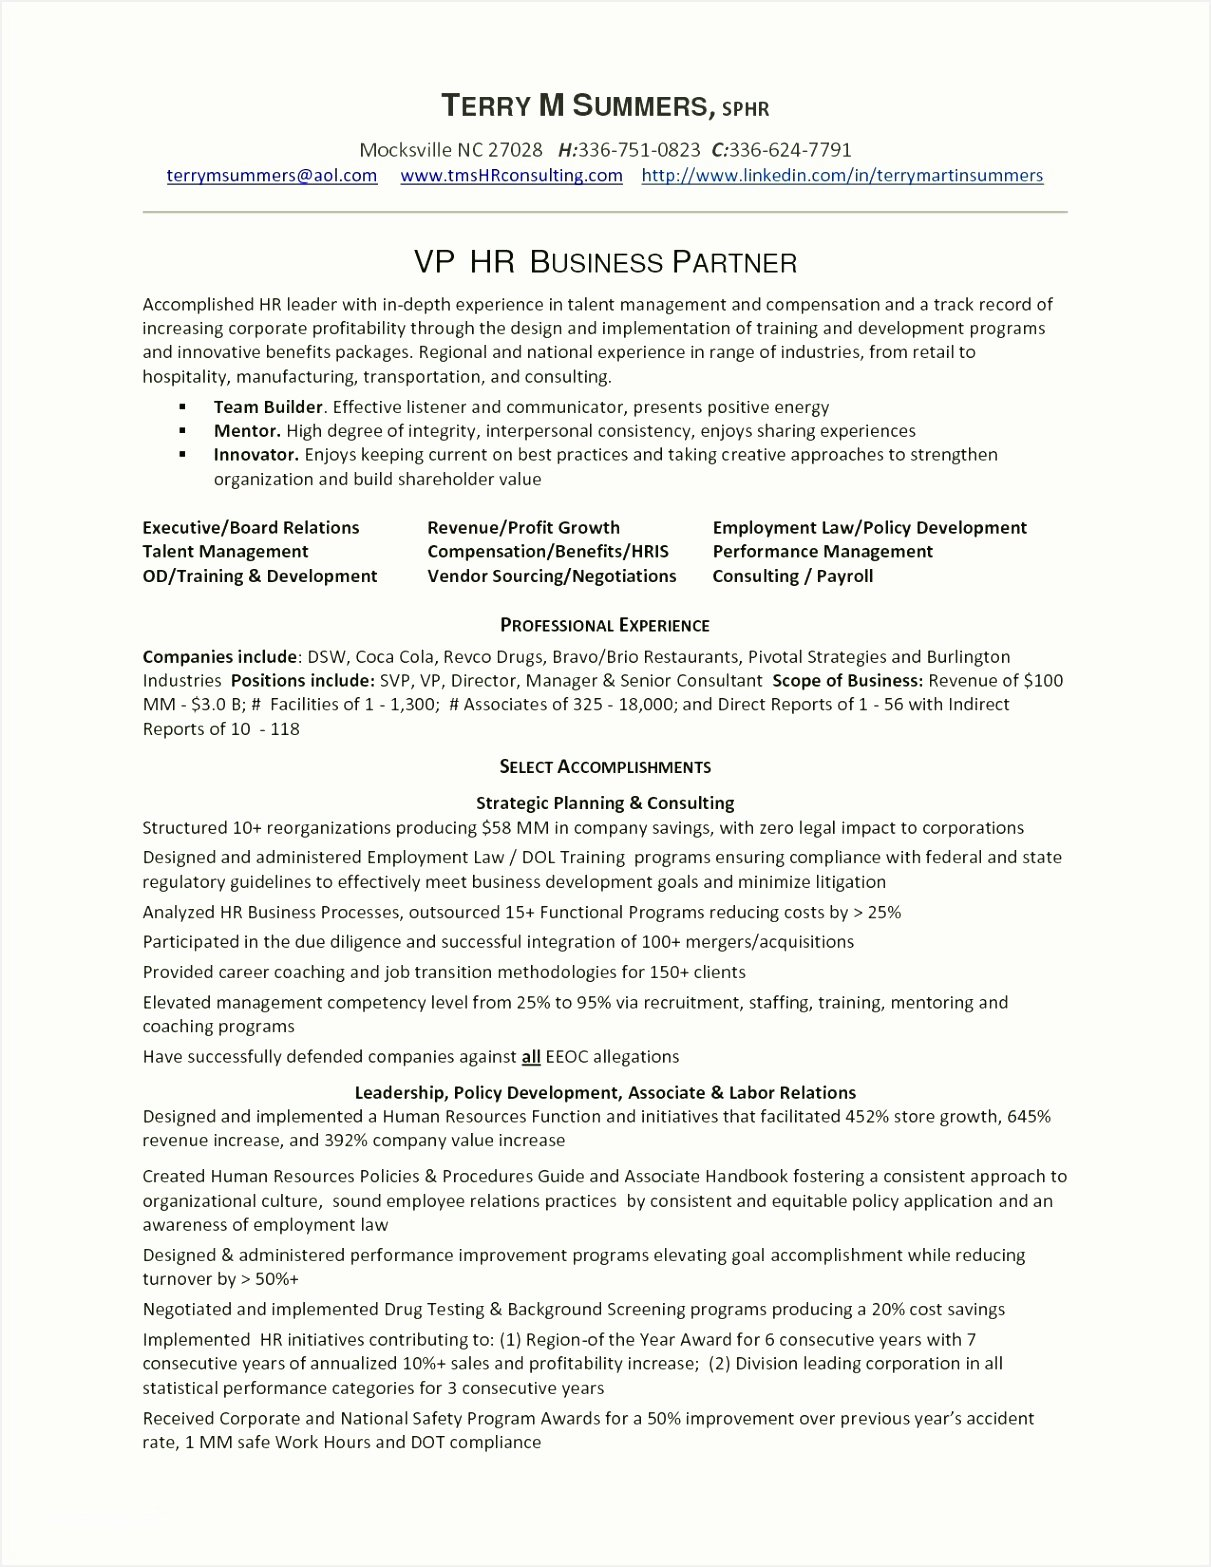 Collaboration Agreement Template Doc Fresh 5 Strategic Partnership Agreement Template Besttemplatess123